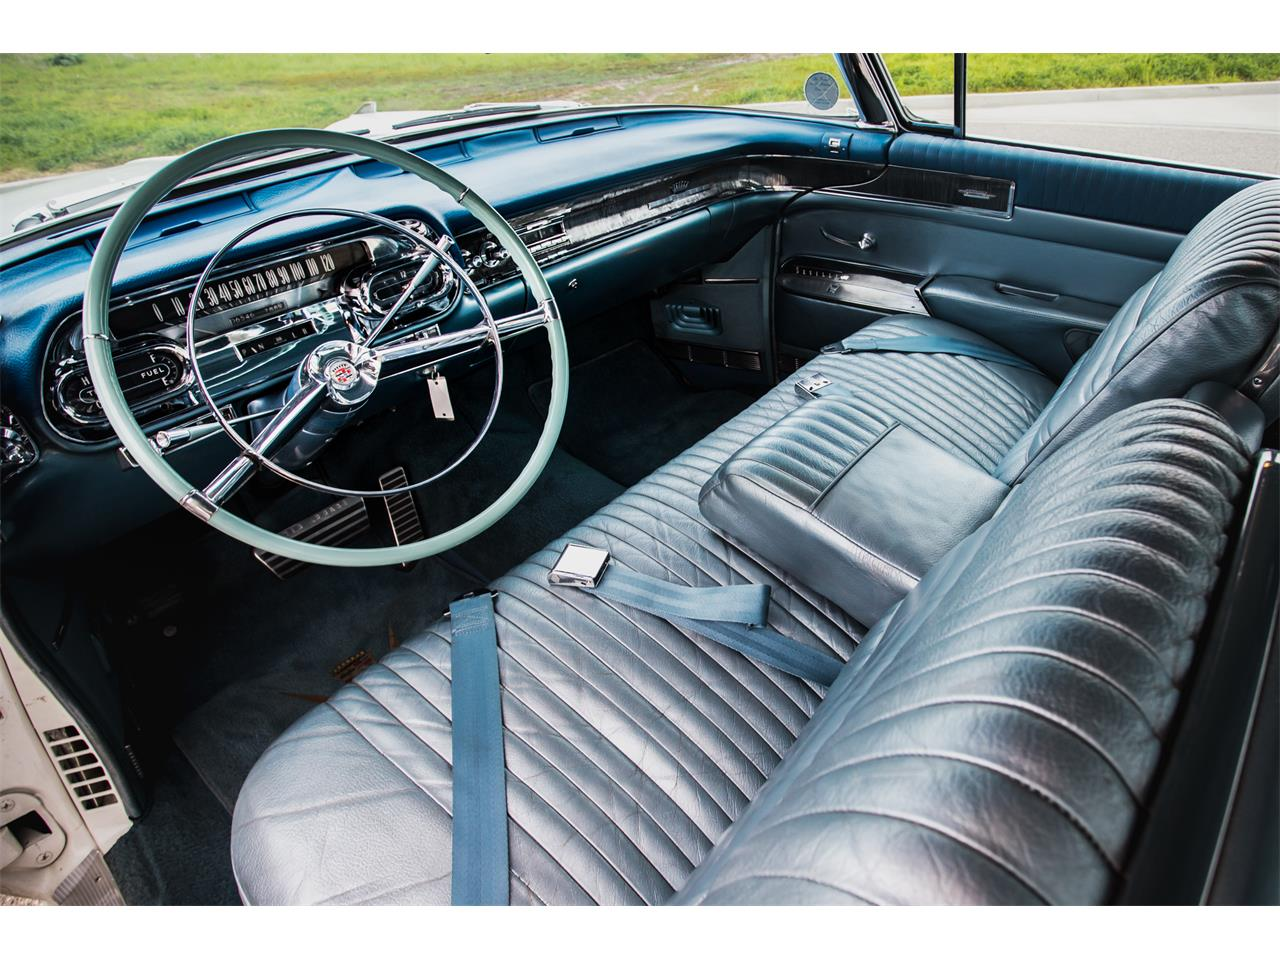 Large Picture of Classic '58 Cadillac Eldorado located in California - $67,900.00 Offered by Radwan Classic Cars - P4QT